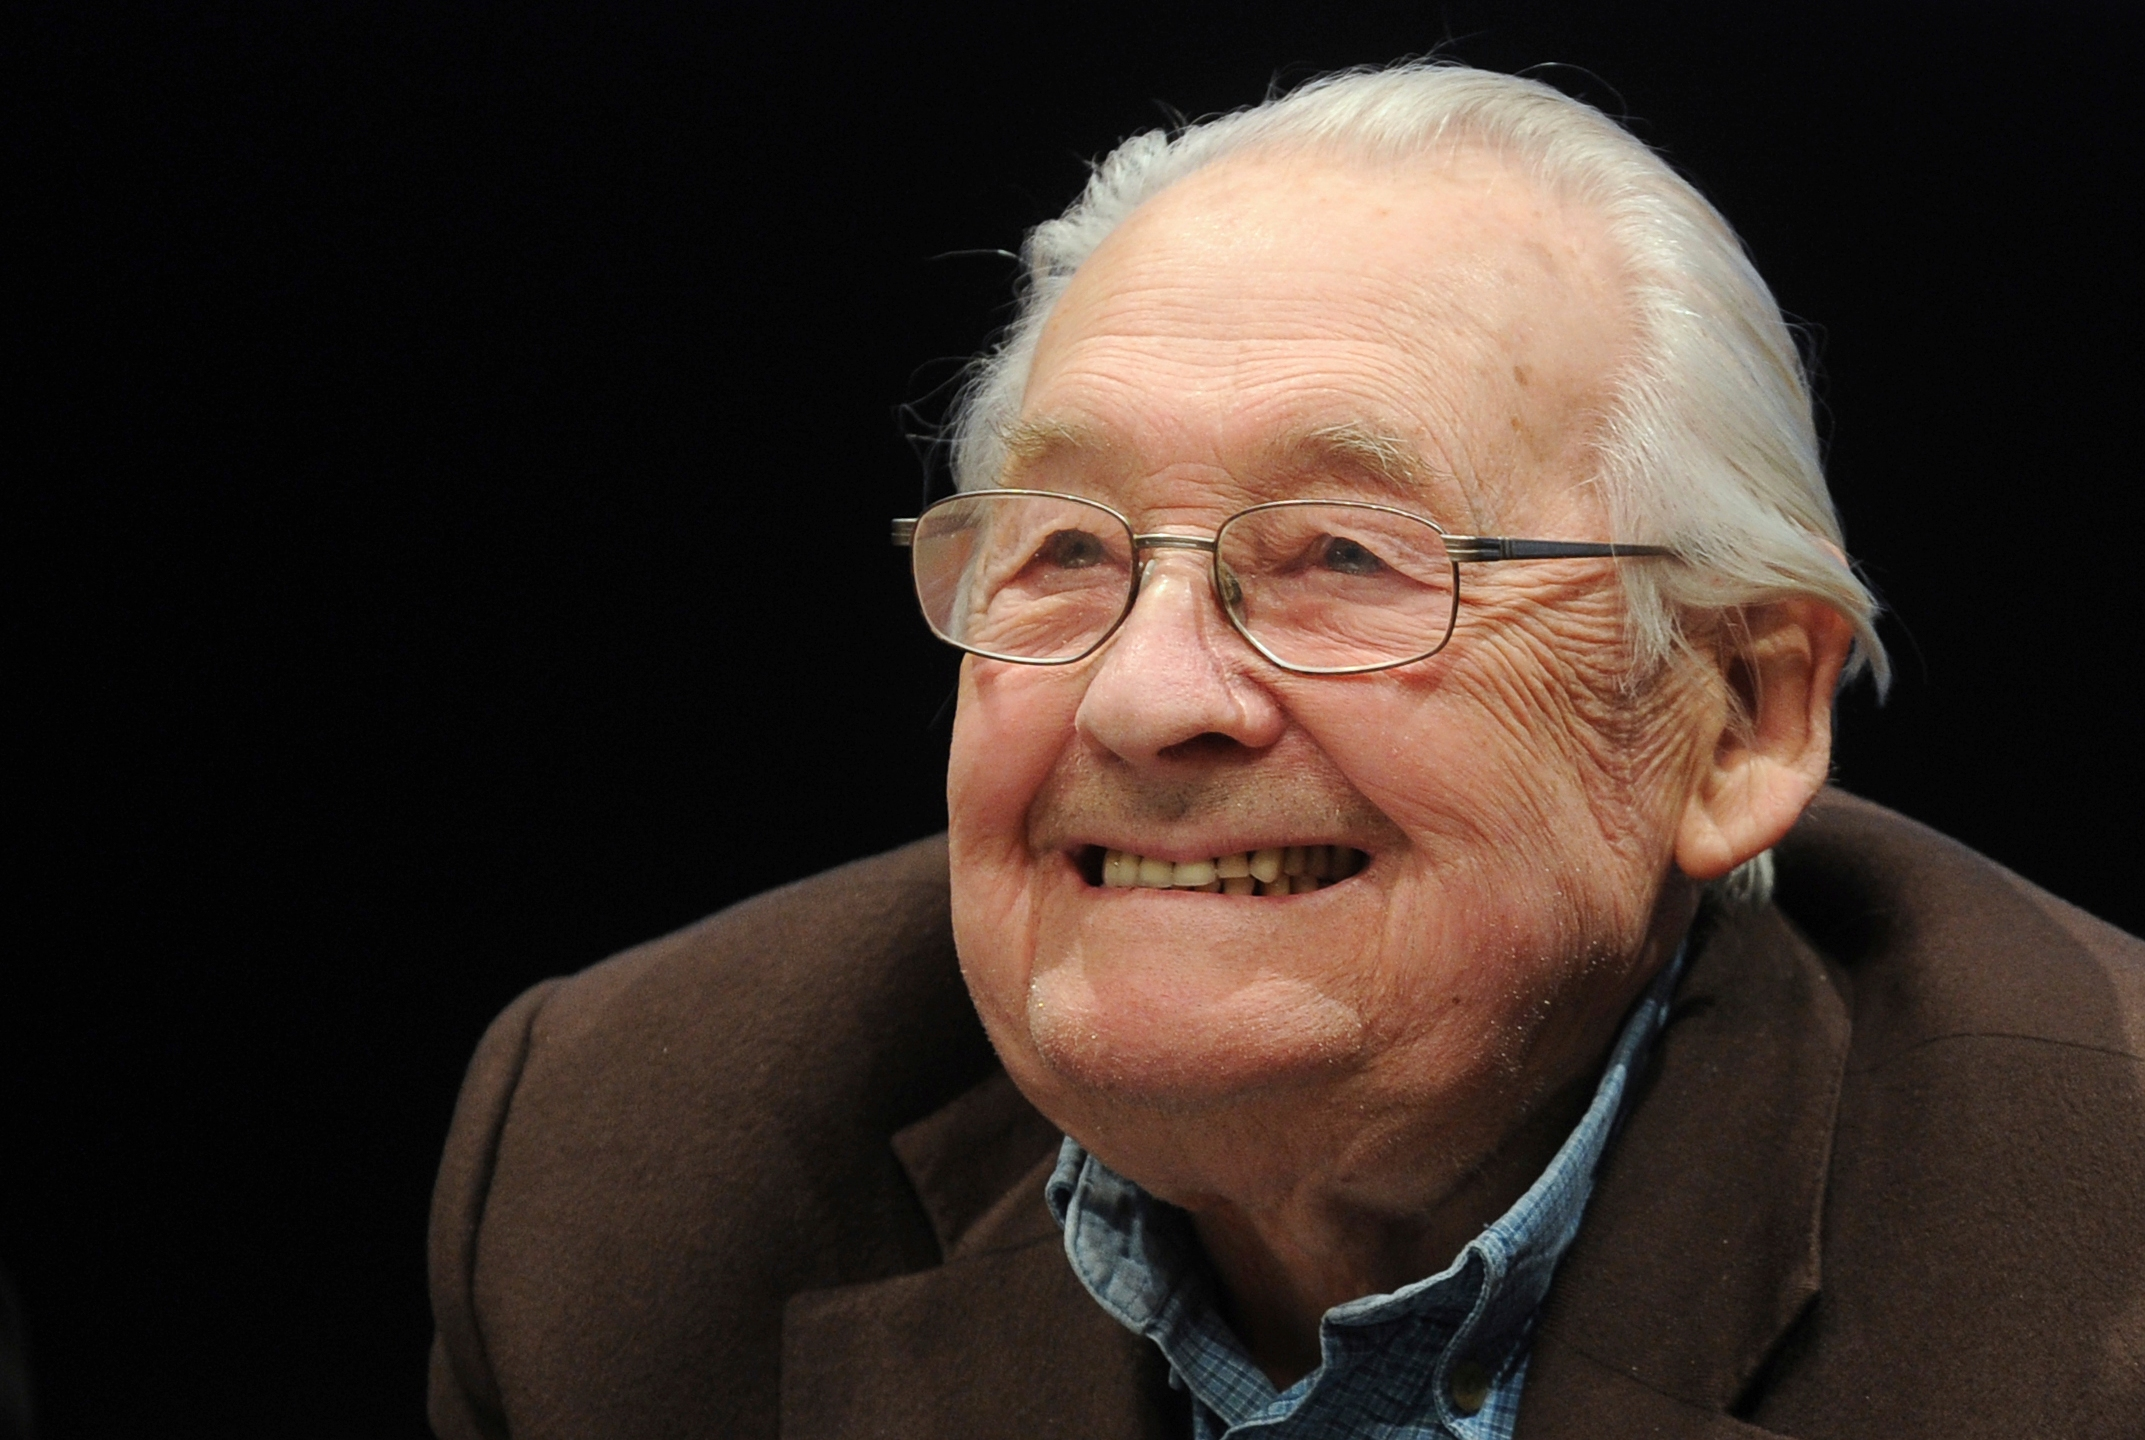 Andrzej Wajda Photo by Alik Keplicz, AP Photo_231113